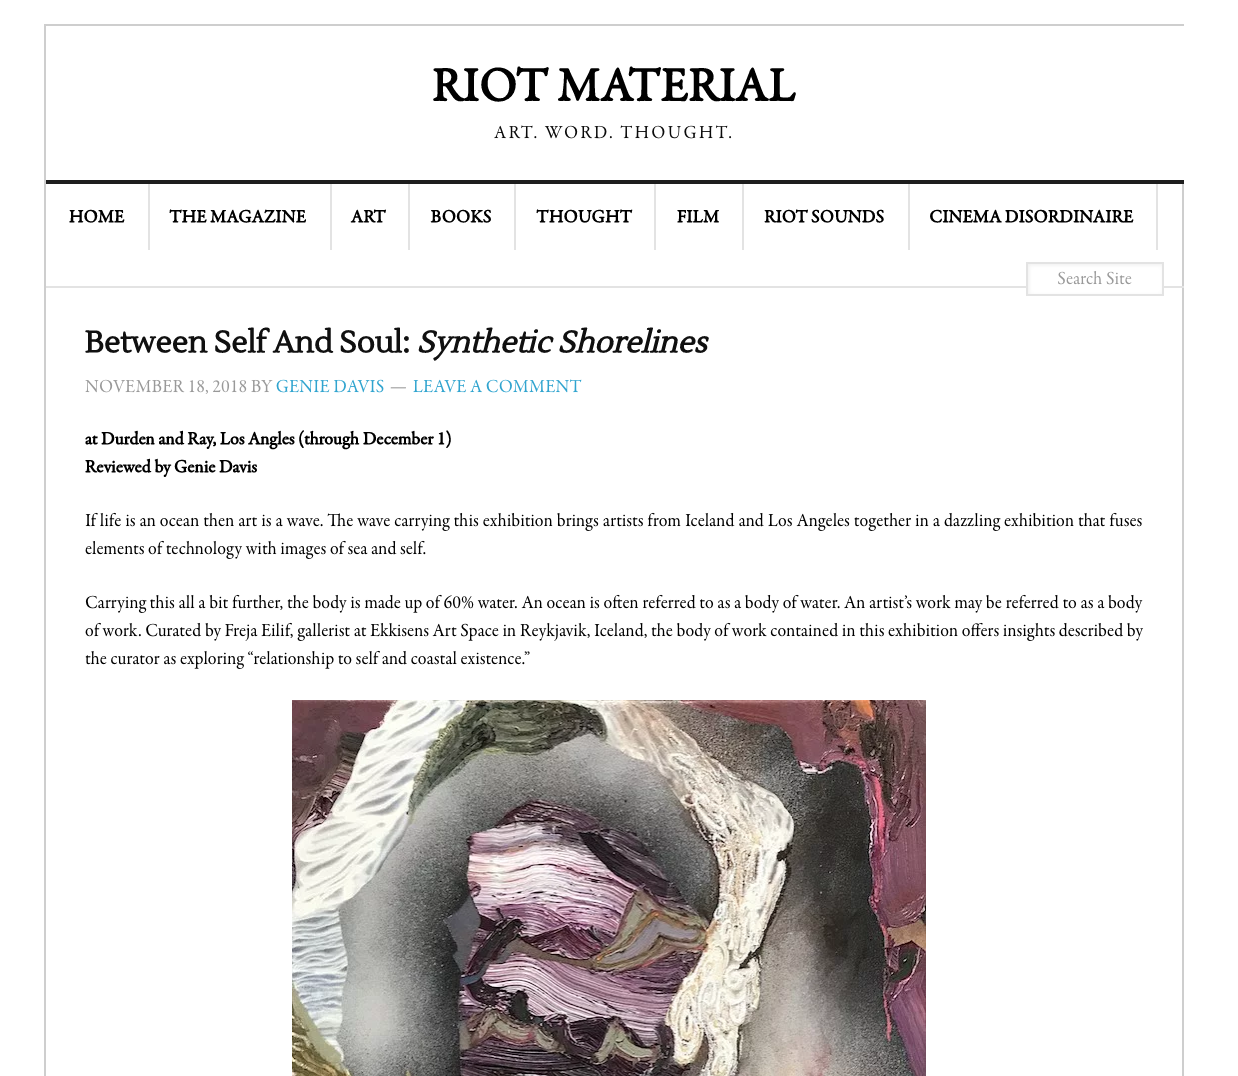 """Riot Material reviews Synthetic Shorelines - If life is an ocean then art is a wave. The wave carrying this exhibition brings artists from Iceland and Los Angeles together in a dazzling exhibition that fuses elements of technology with images of sea and self.Carrying this all a bit further, the body is made up of 60% water. An ocean is often referred to as a body of water. An artist's work may be referred to as a body of work. Curated by Freja Eilif, gallerist at Ekkisens Art Space in Reykjavik, Iceland, the body of work contained in this exhibition offers insights described by the curator as exploring """"relationship to self and coastal existence."""""""